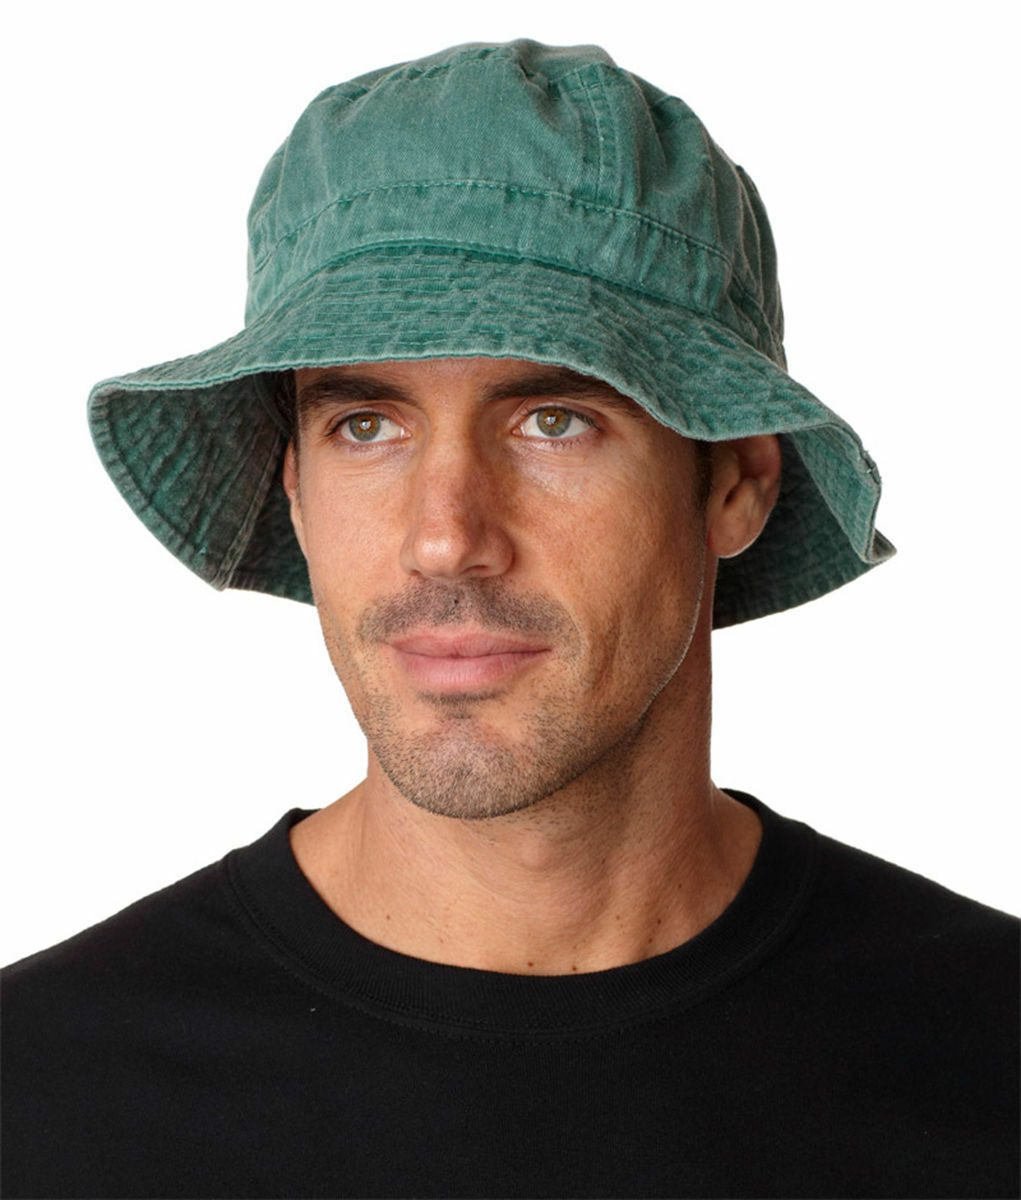 Adams Dyed Pigment Dyed Adams 100% Cotton Vacationer Bucket Cap Hat VA101  Free Shipping 8292d0